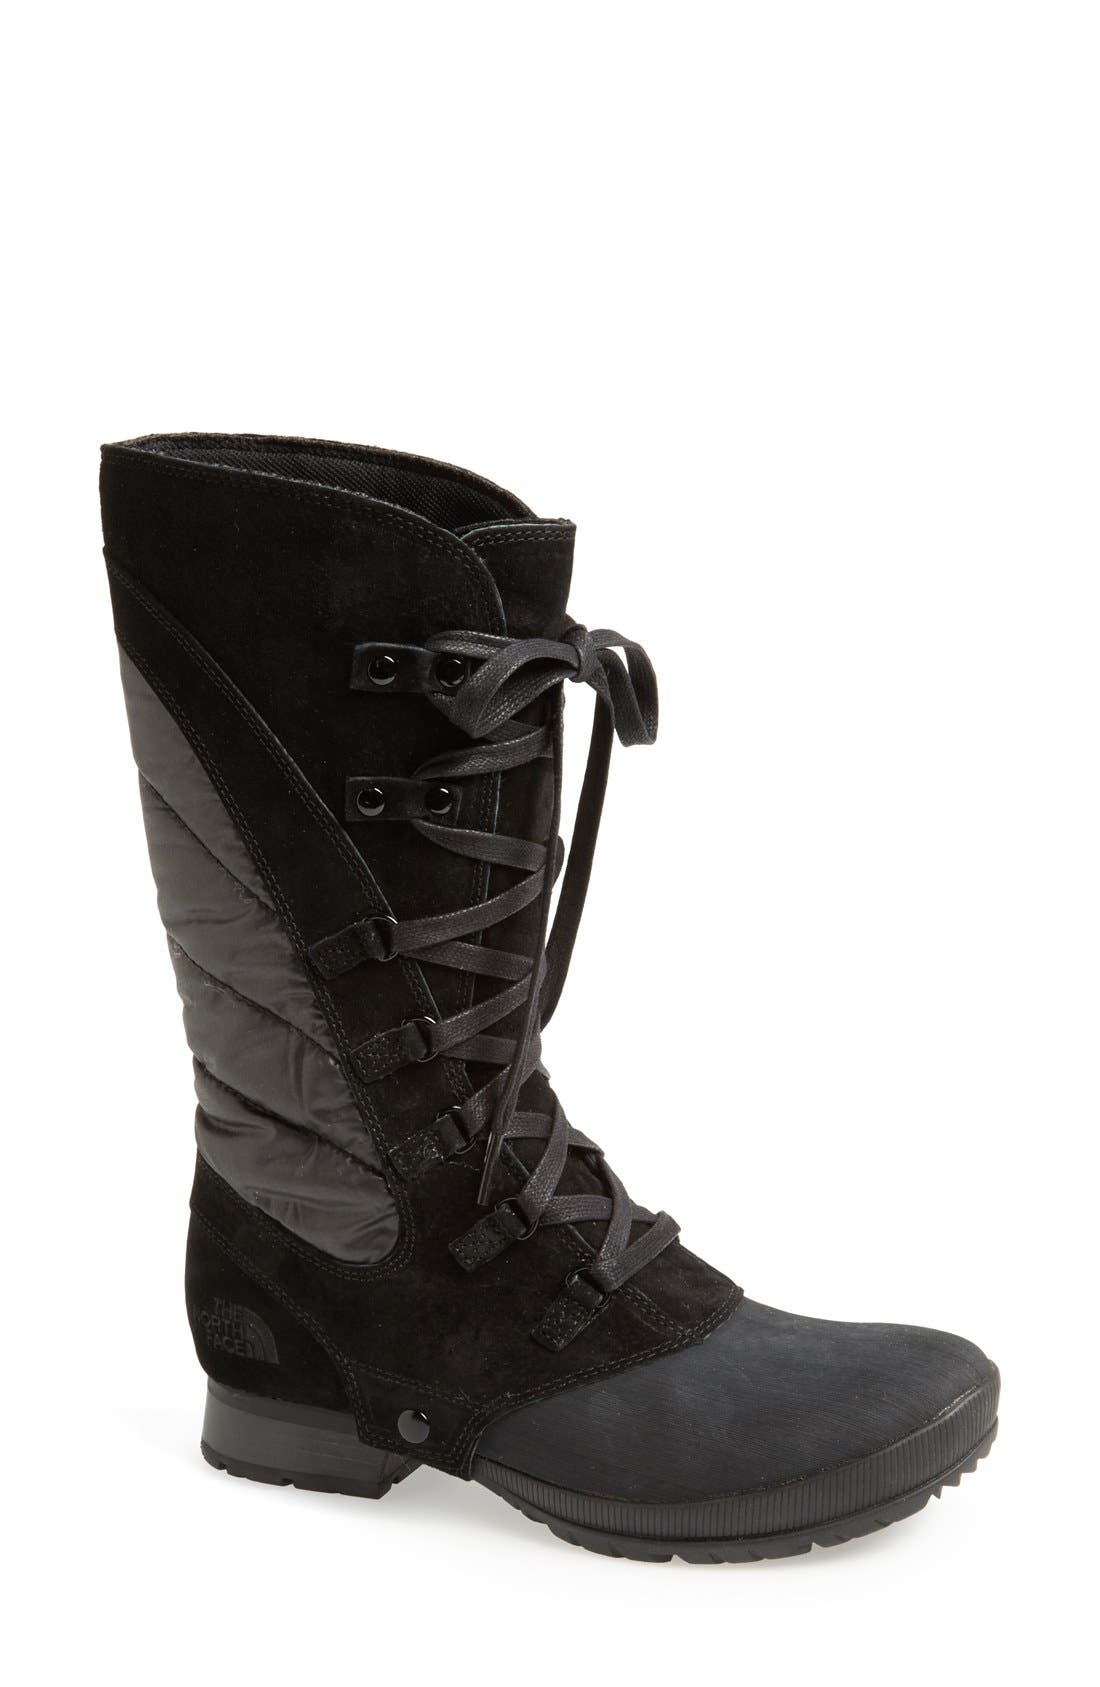 Main Image - The North Face 'Zophia' Waterproof Boot (Women)